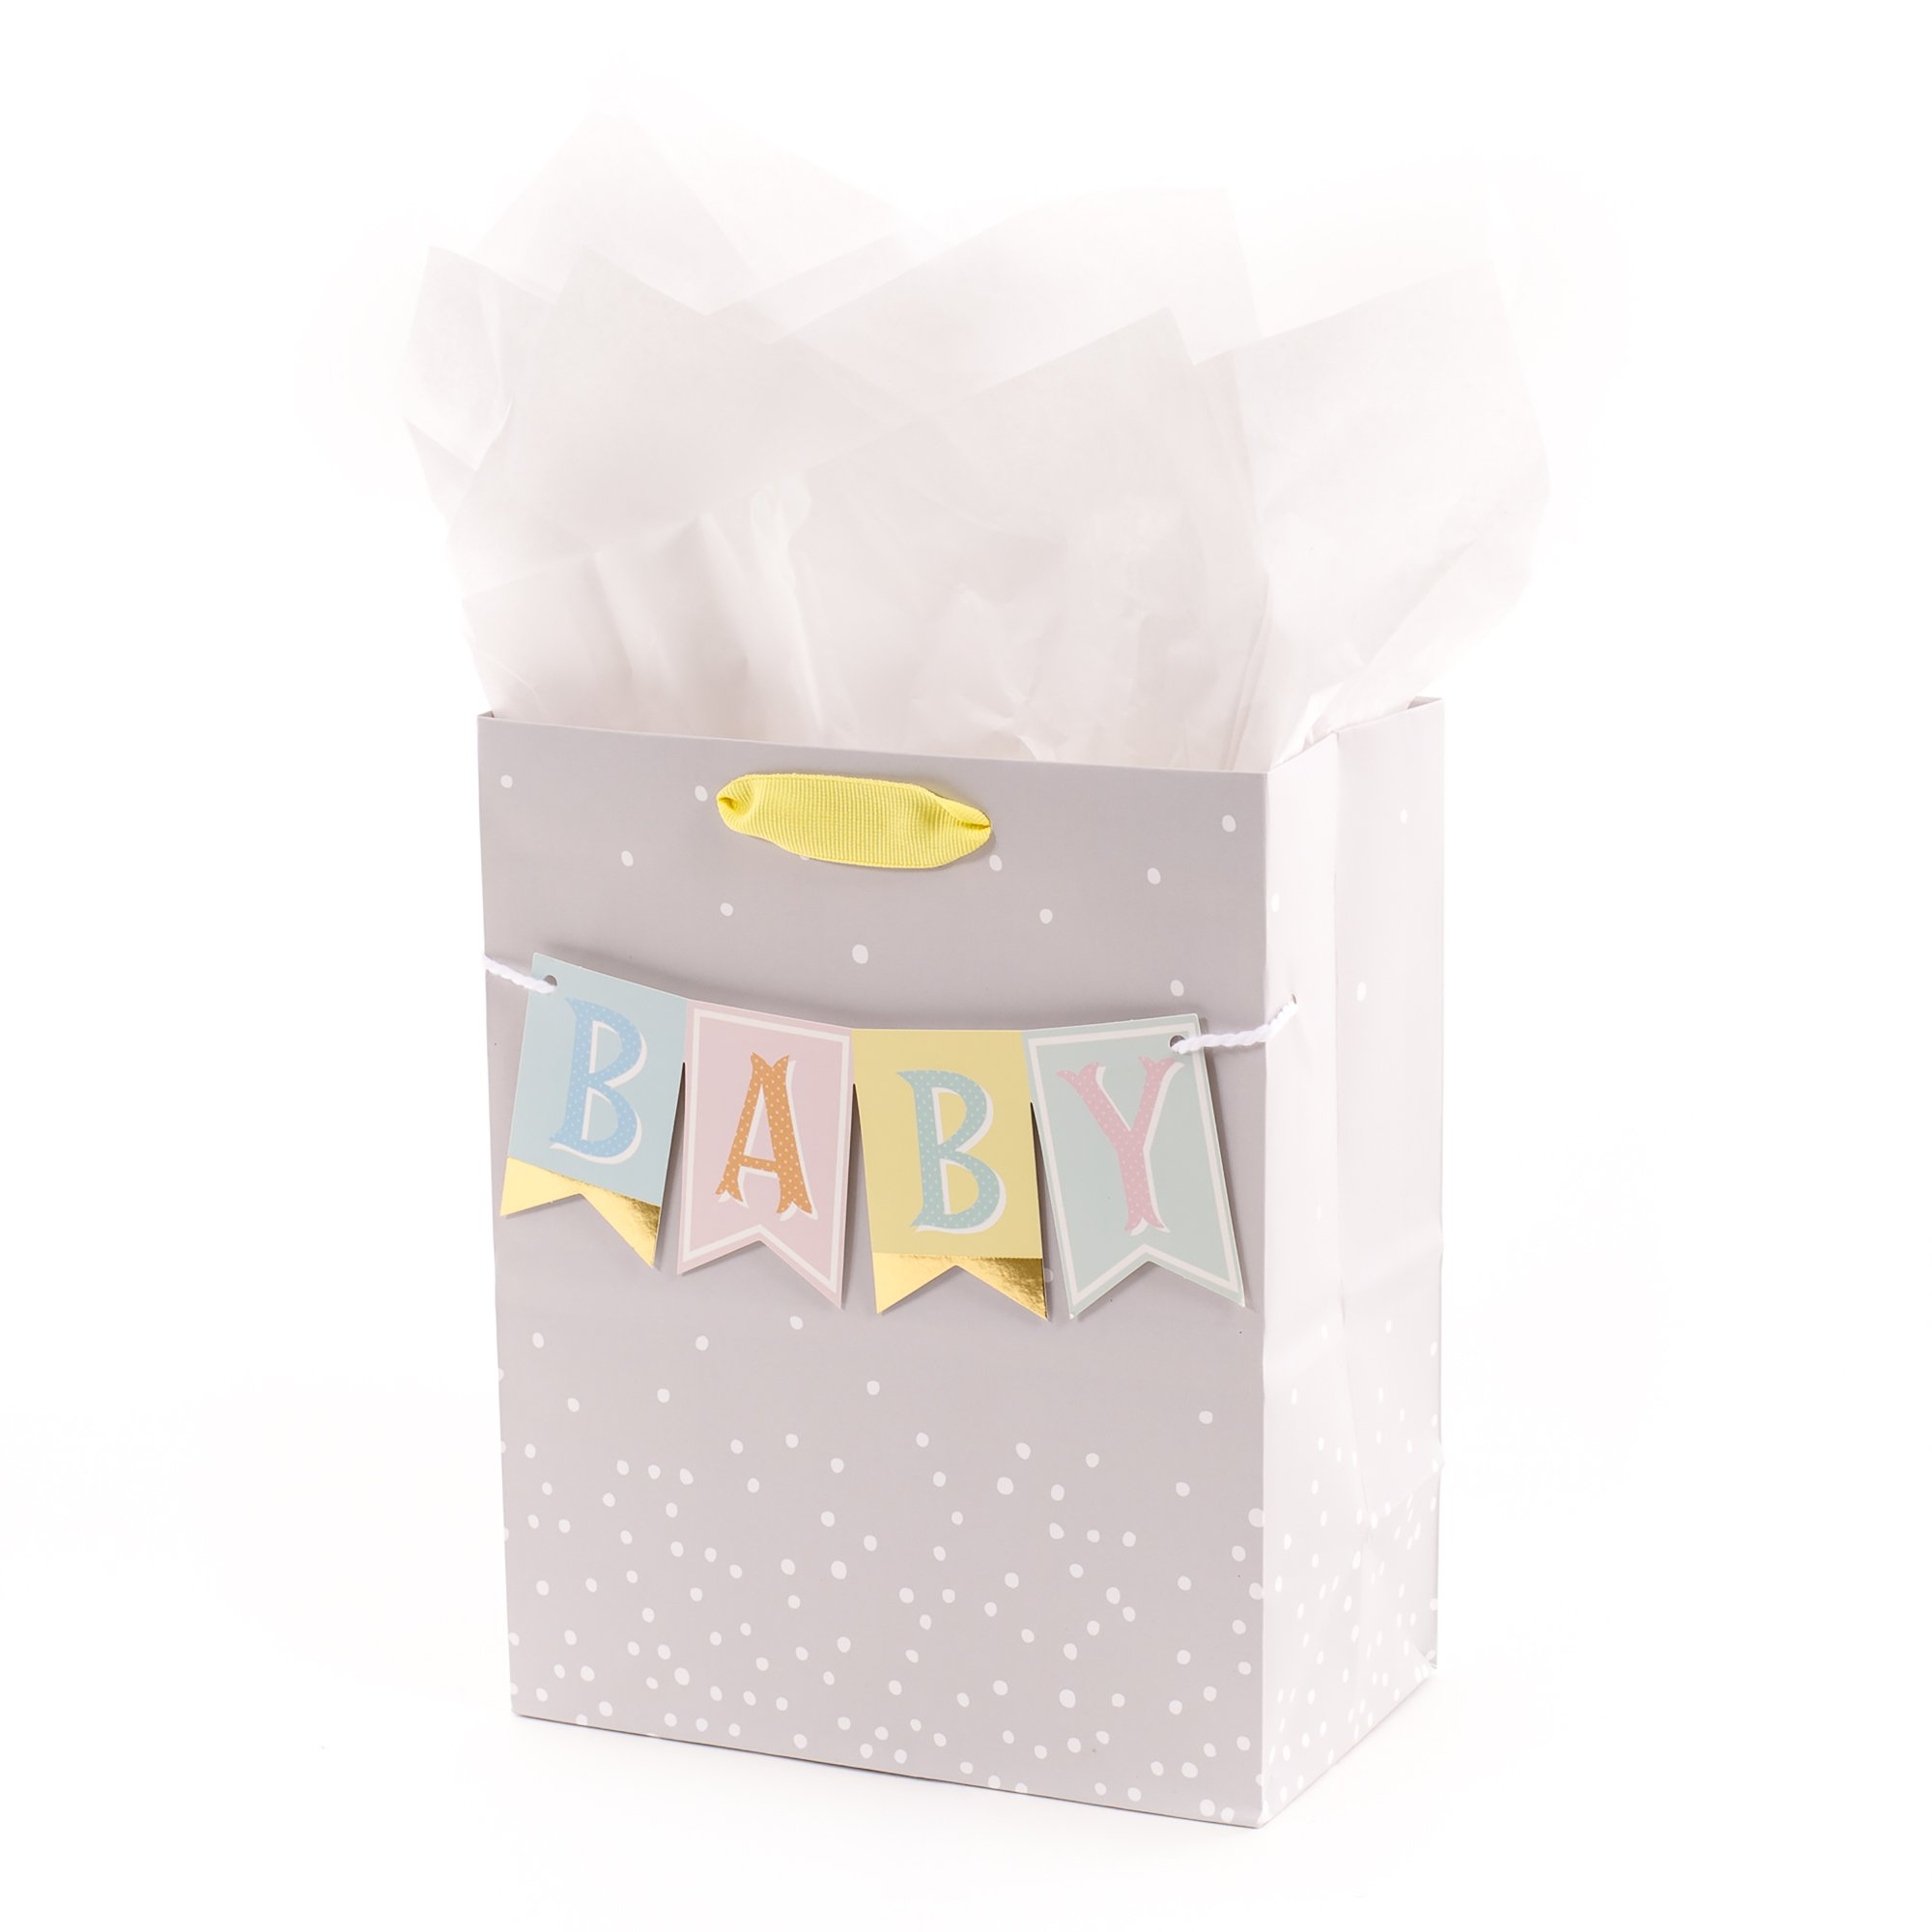 """Hallmark 9"""" Medium Baby Gift Bag with Tissue Paper - Baby Banner in Grey, Pink and Blue for Baby Showers, New Parents, and More"""